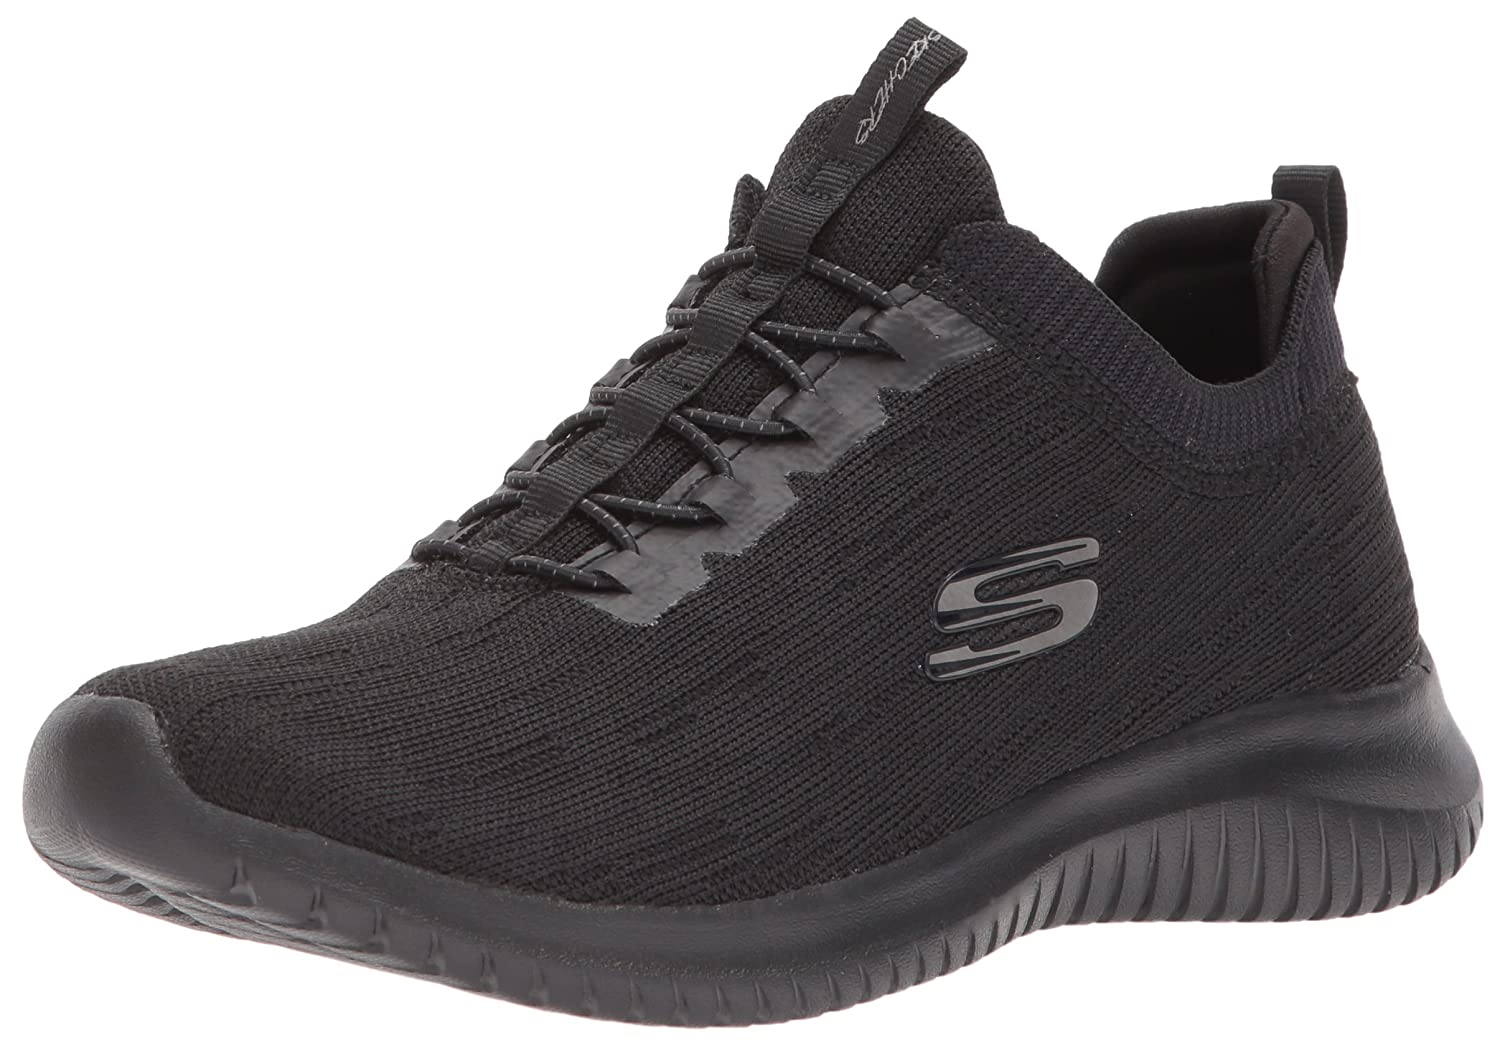 Skechers Women's Ultra Flex Bright Horizon Sneaker B074BZCRST 10 B(M) US|Black/Black